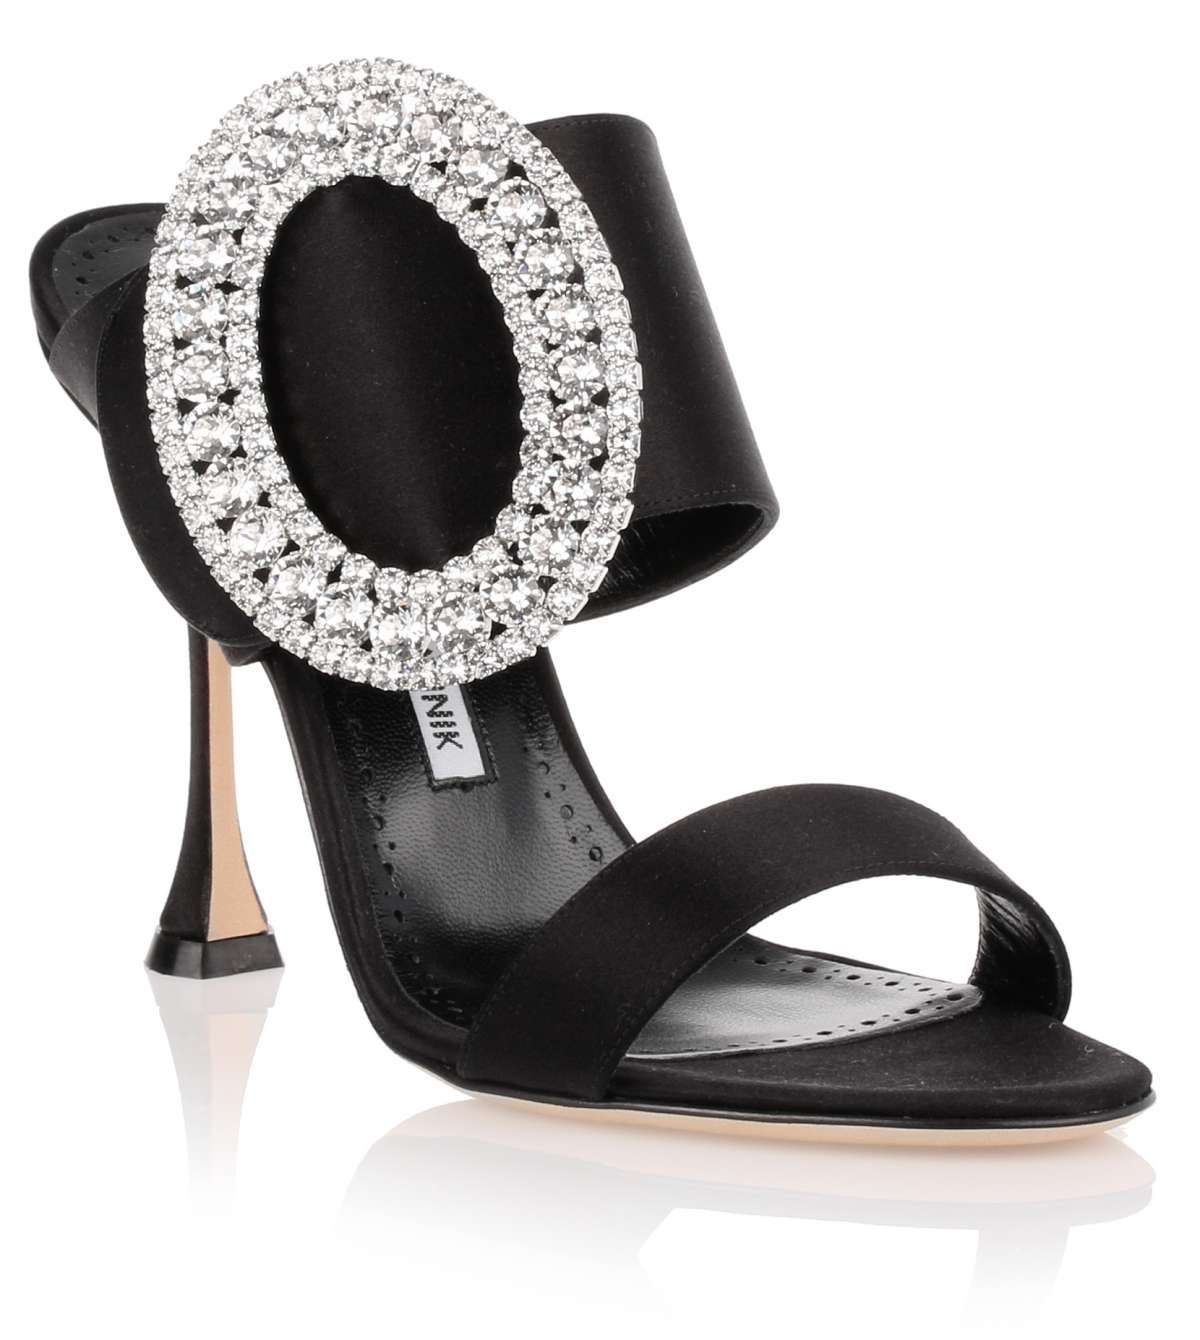 Black satin sandal from Manolo Blahnik. The Fibiona has a 105mm signature heel, a mule design, an a large oval crystal embellishment at the side.True to sizeLeather soleMade in Italy